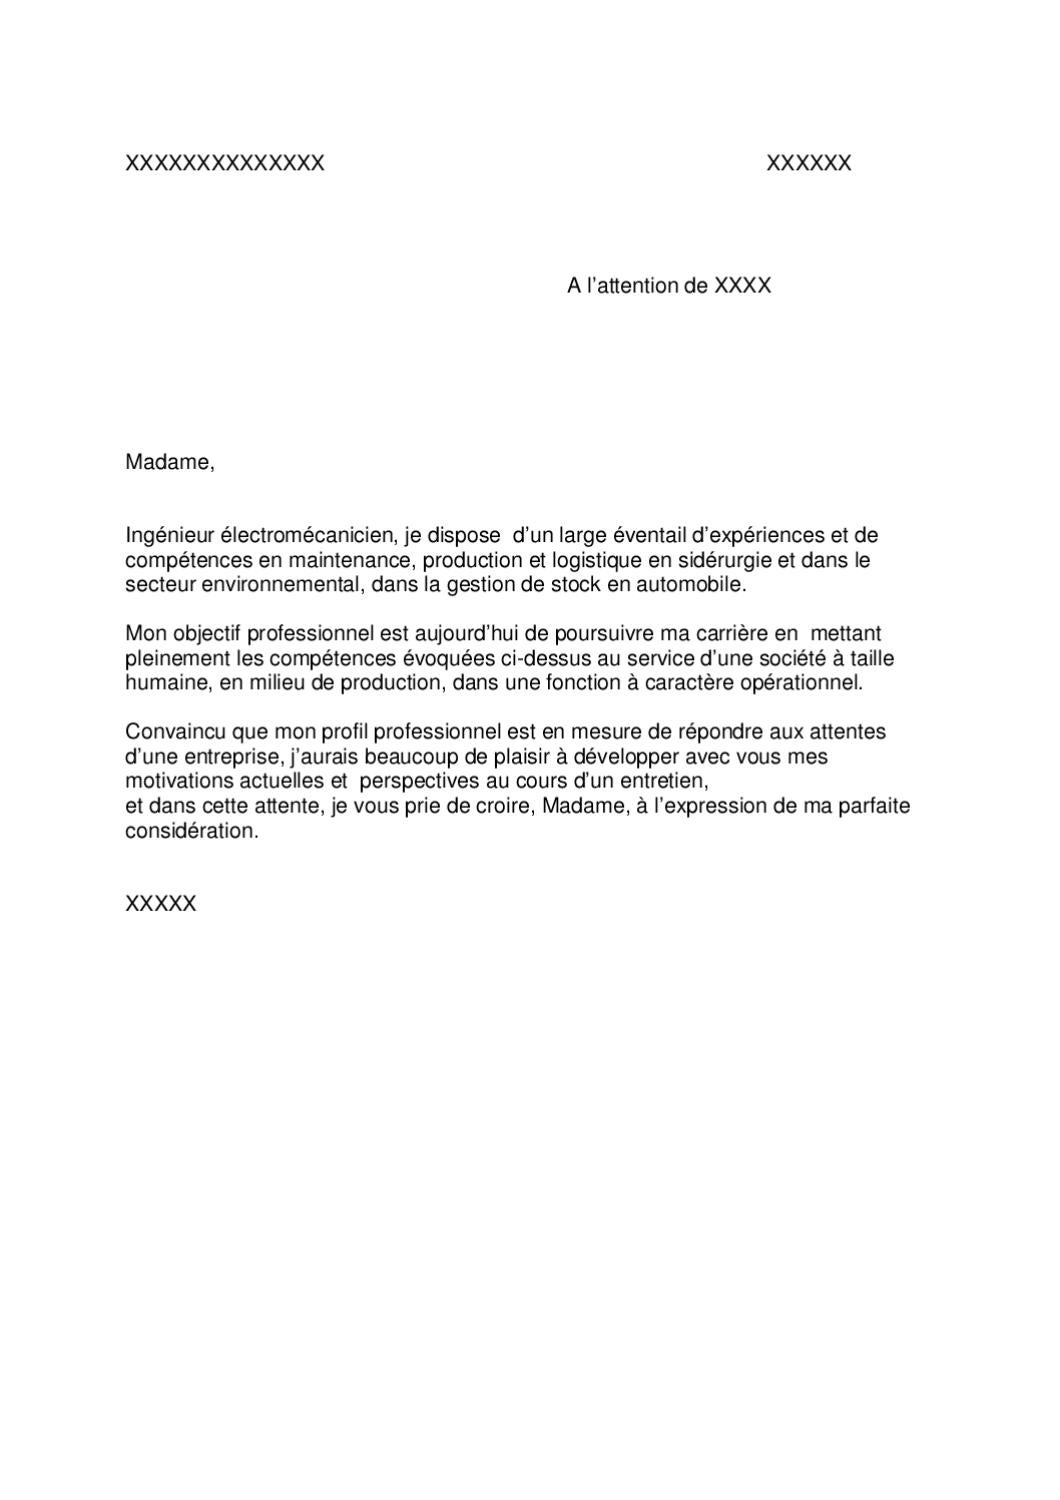 exemple de lettre de motivation  randstad 2  by jobs  u0026 careers cv